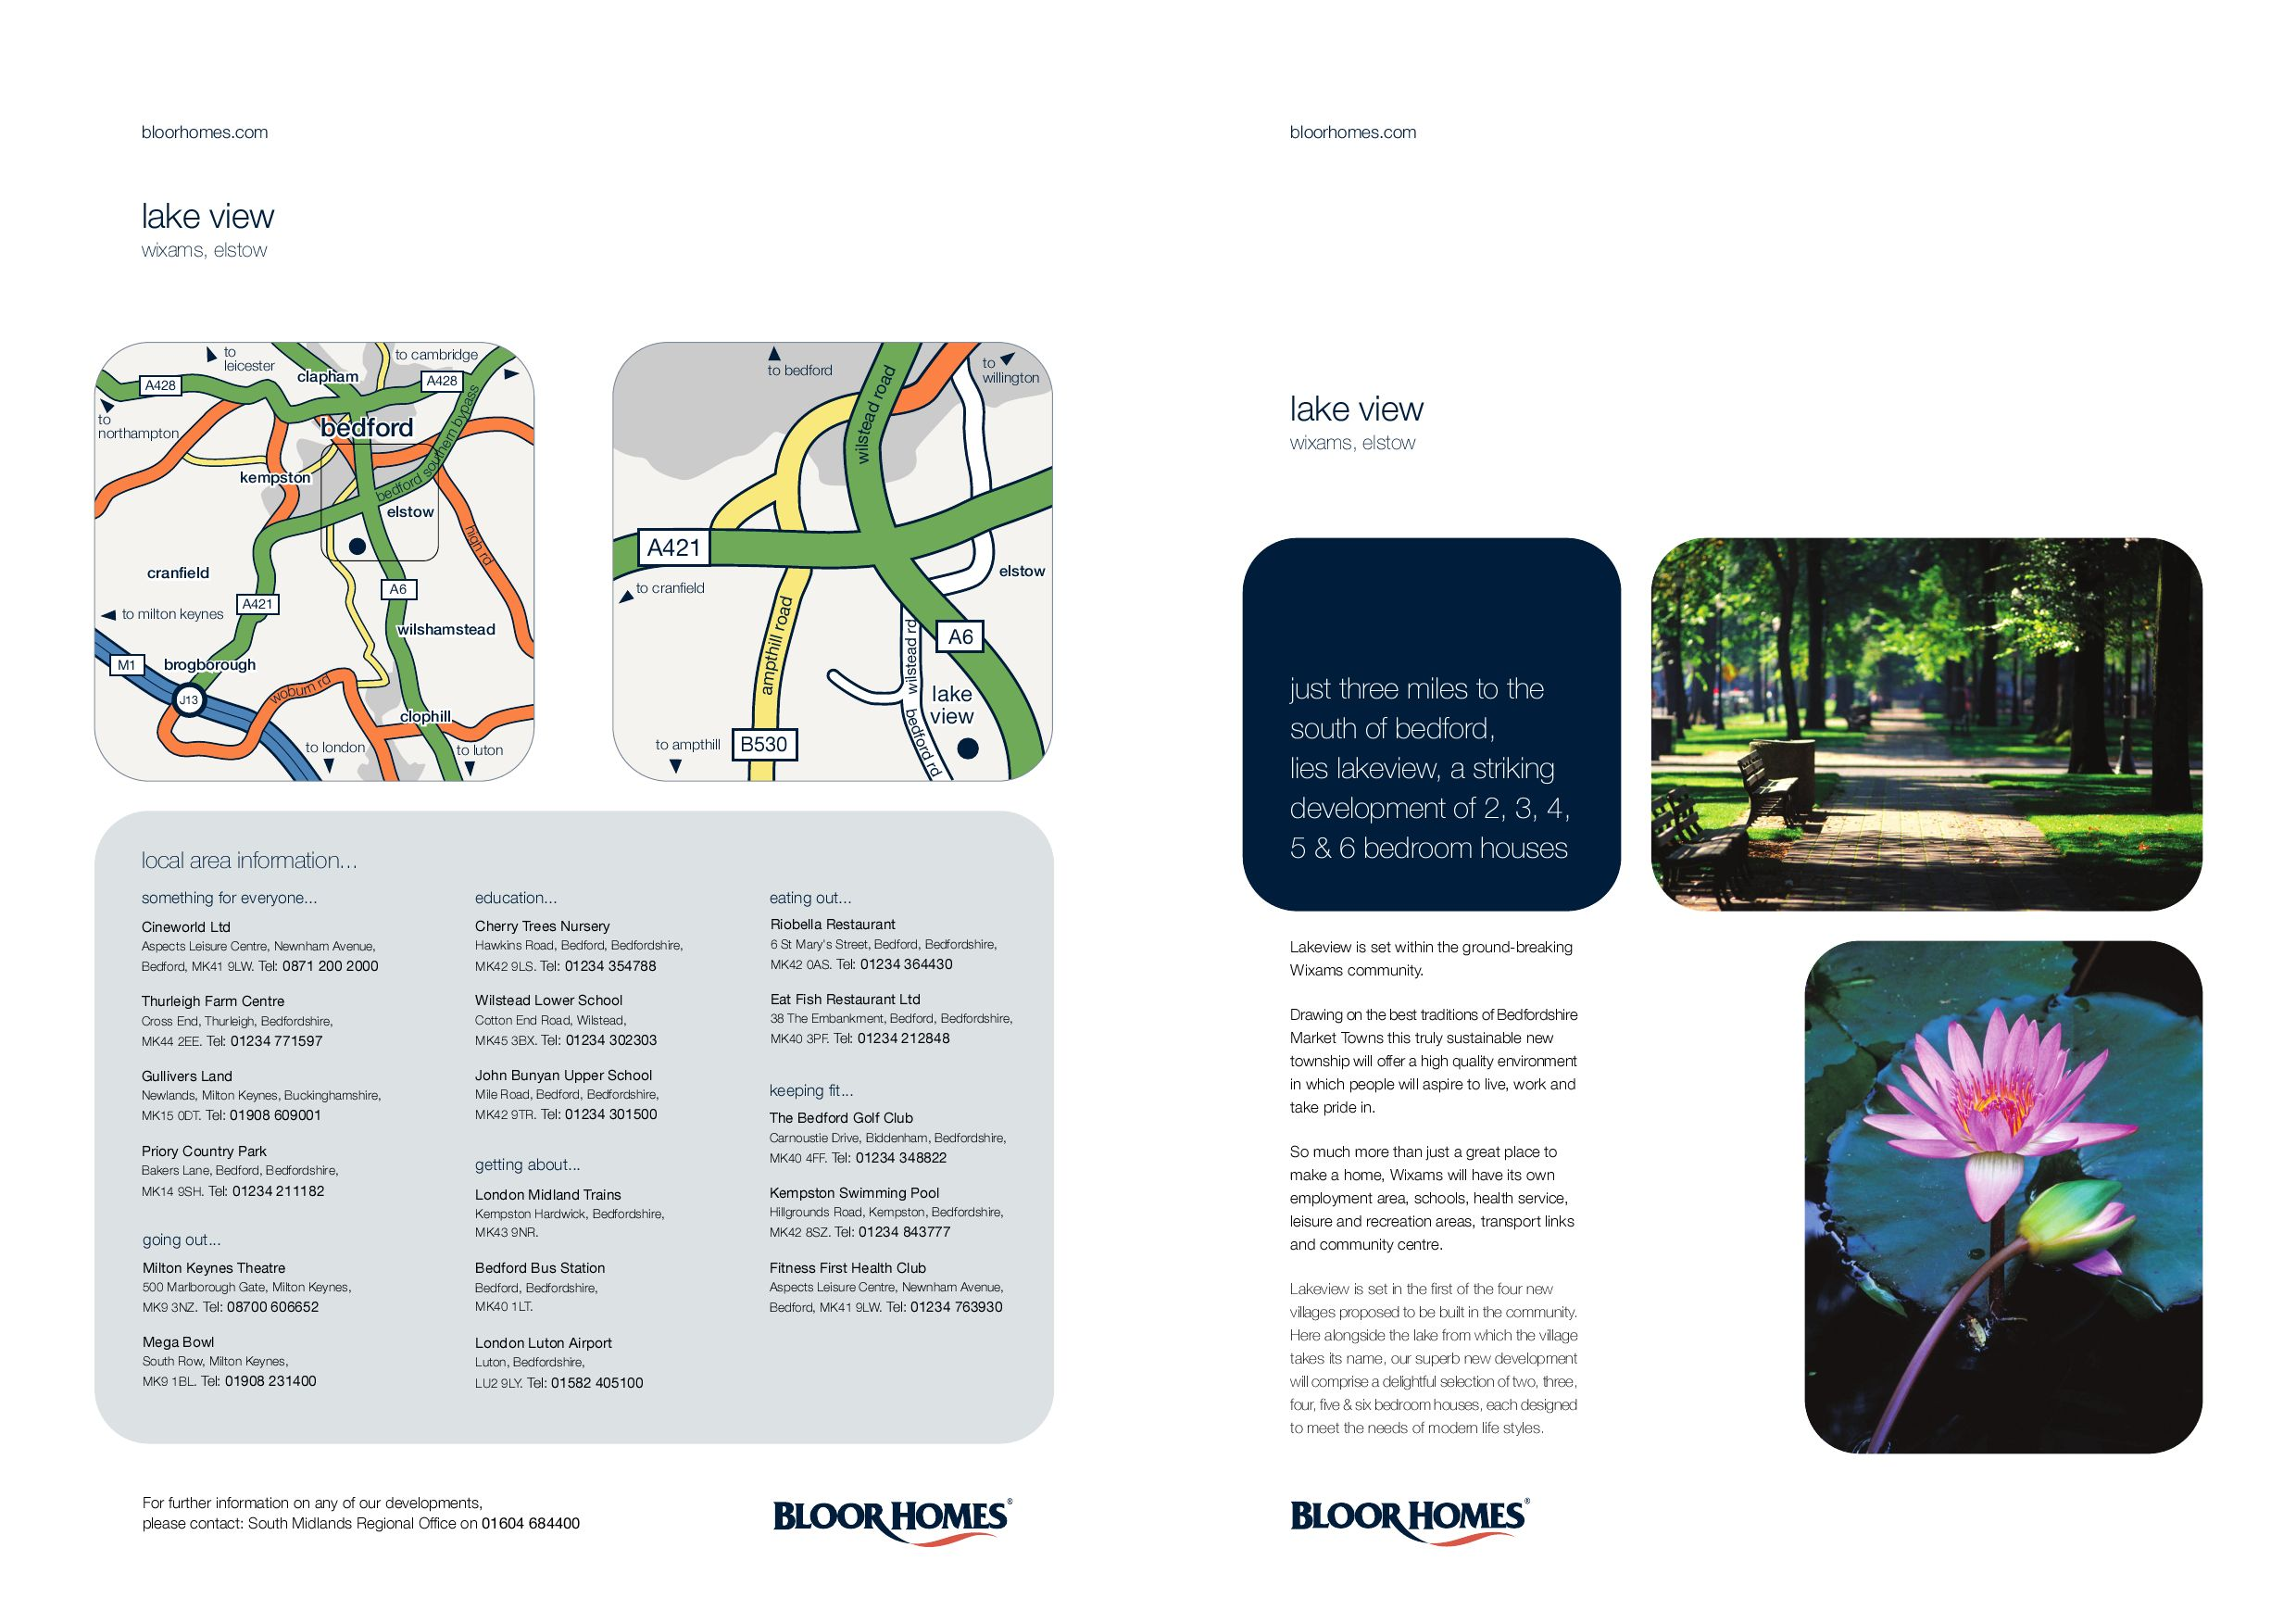 Lake View by Bloor Homes by NewHomesForSale.co.uk - issuu